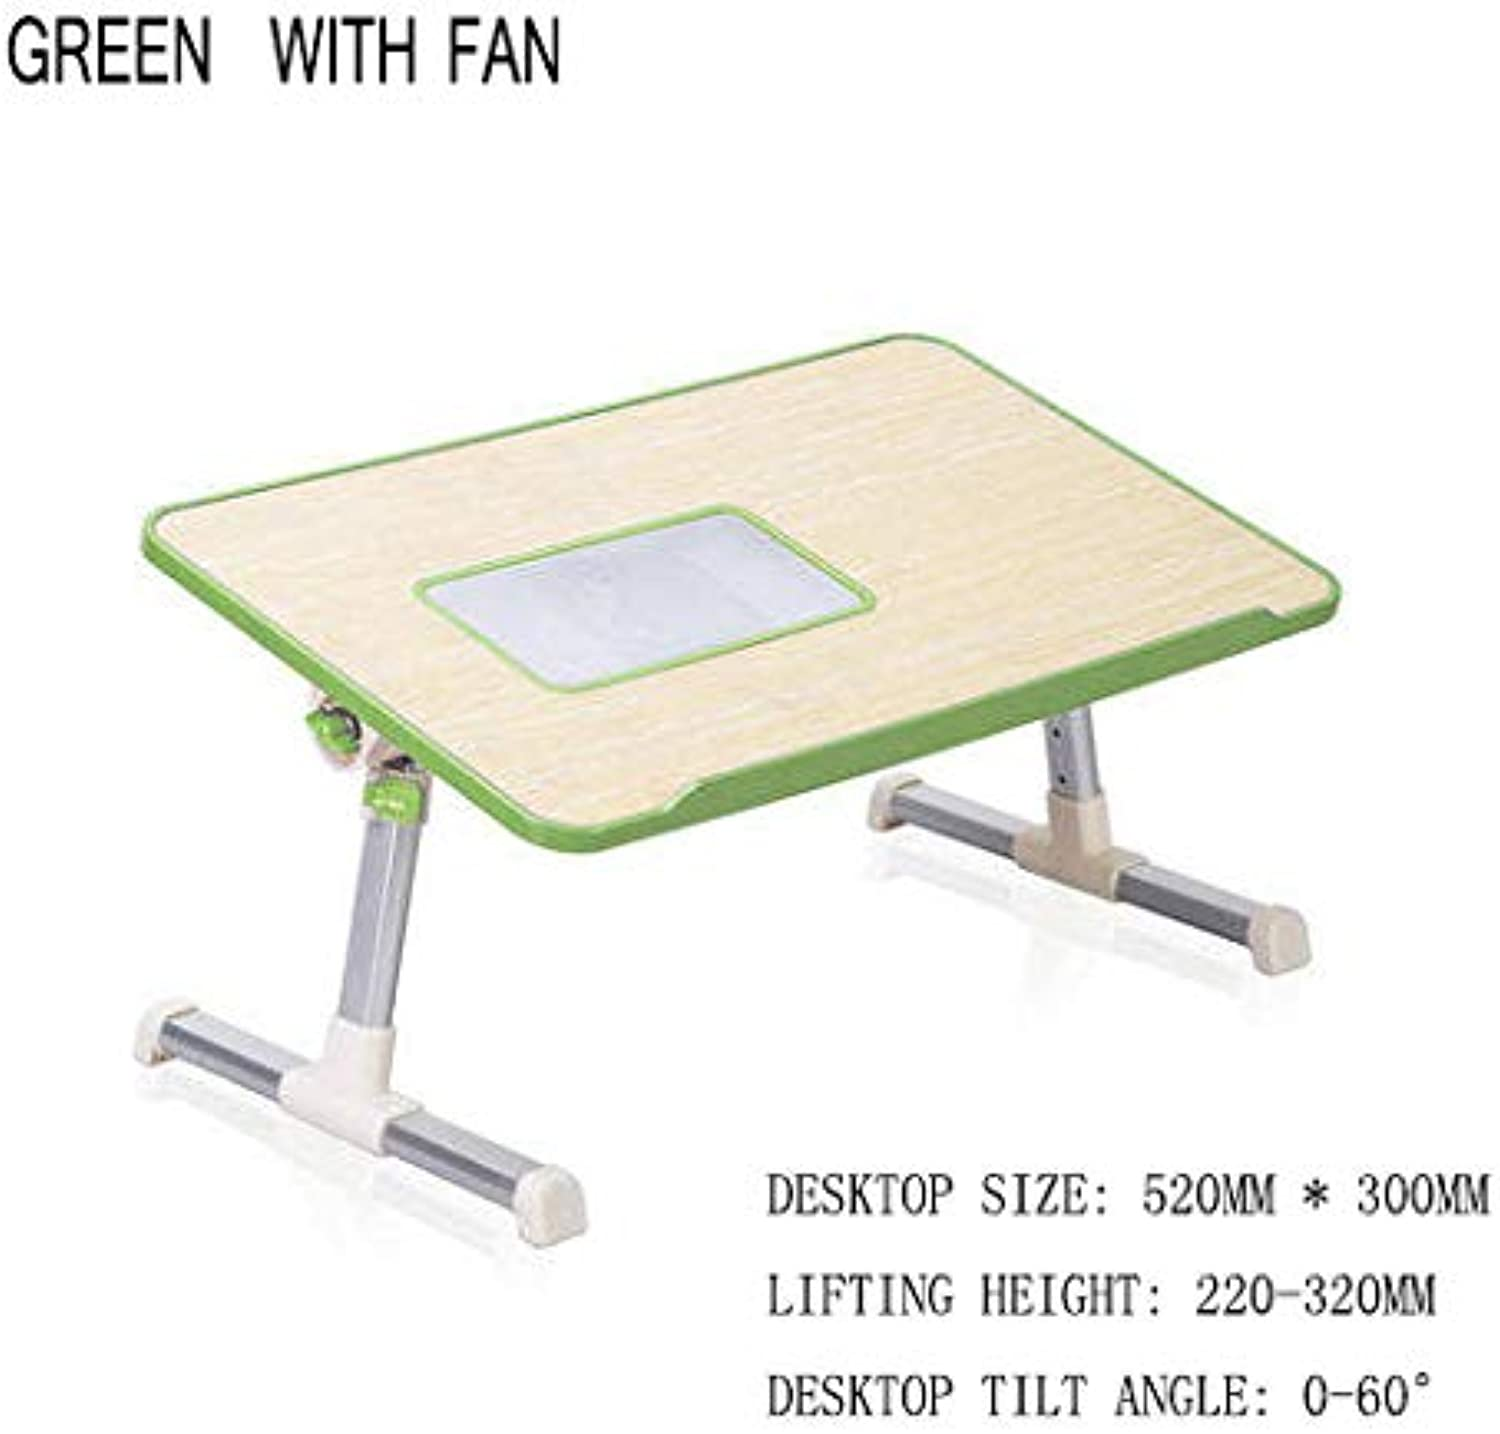 Bed Table Computer Bed with Desk Simple Lazy Table Dormitory Multi-Function Folding Writing Home eat Mini with Fan Black Green   Purple,C,M